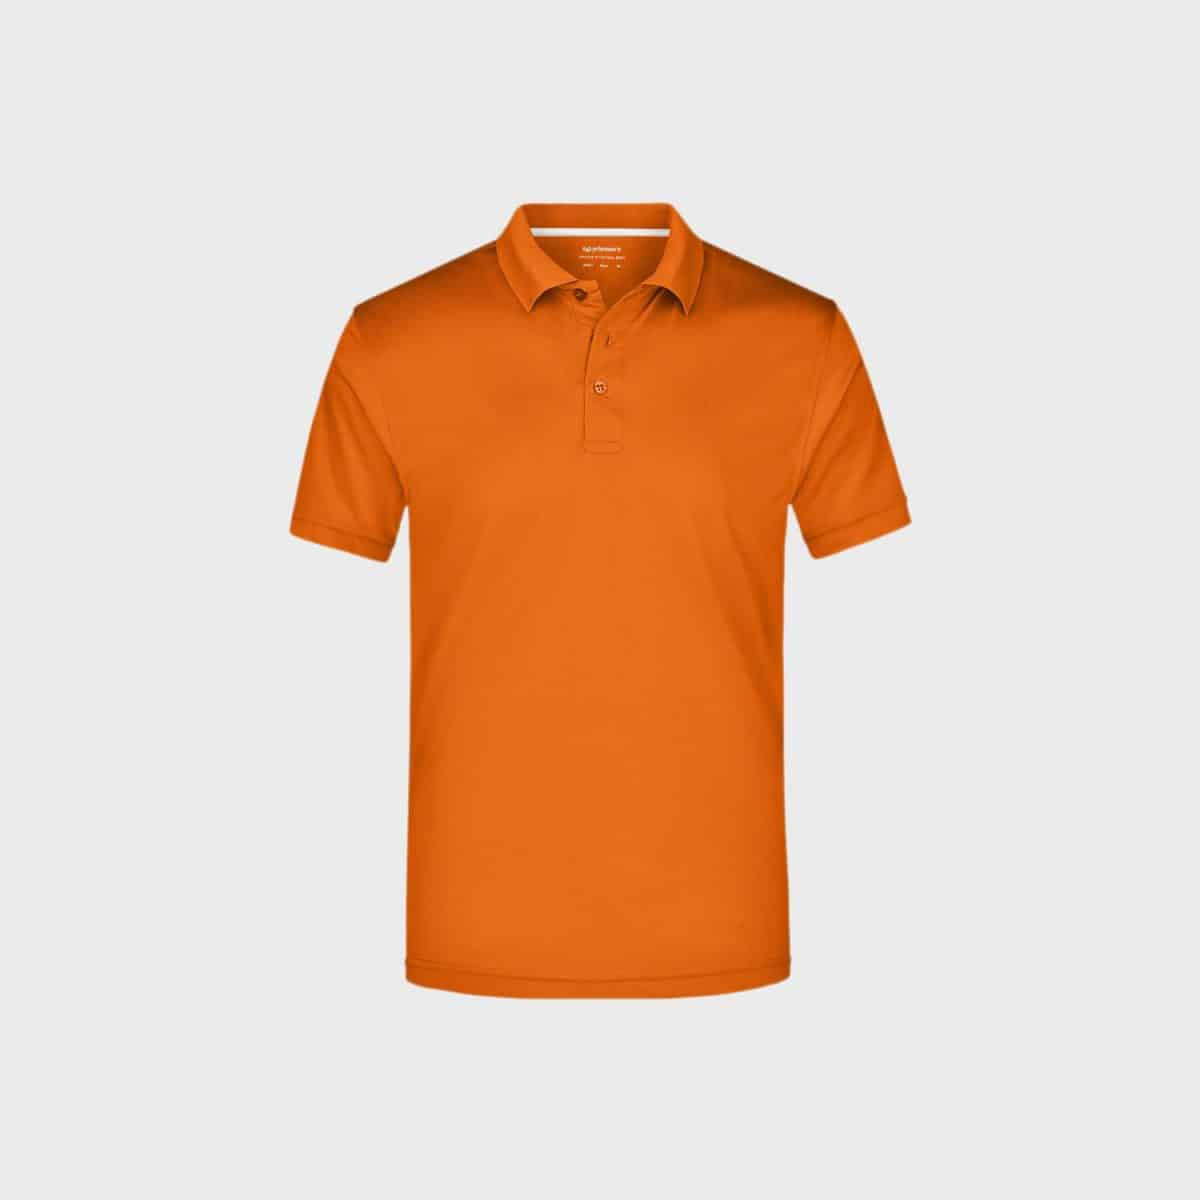 sports-shirt-polo-t-shirt-herren-orange-kaufen-besticken_stickmanufaktur